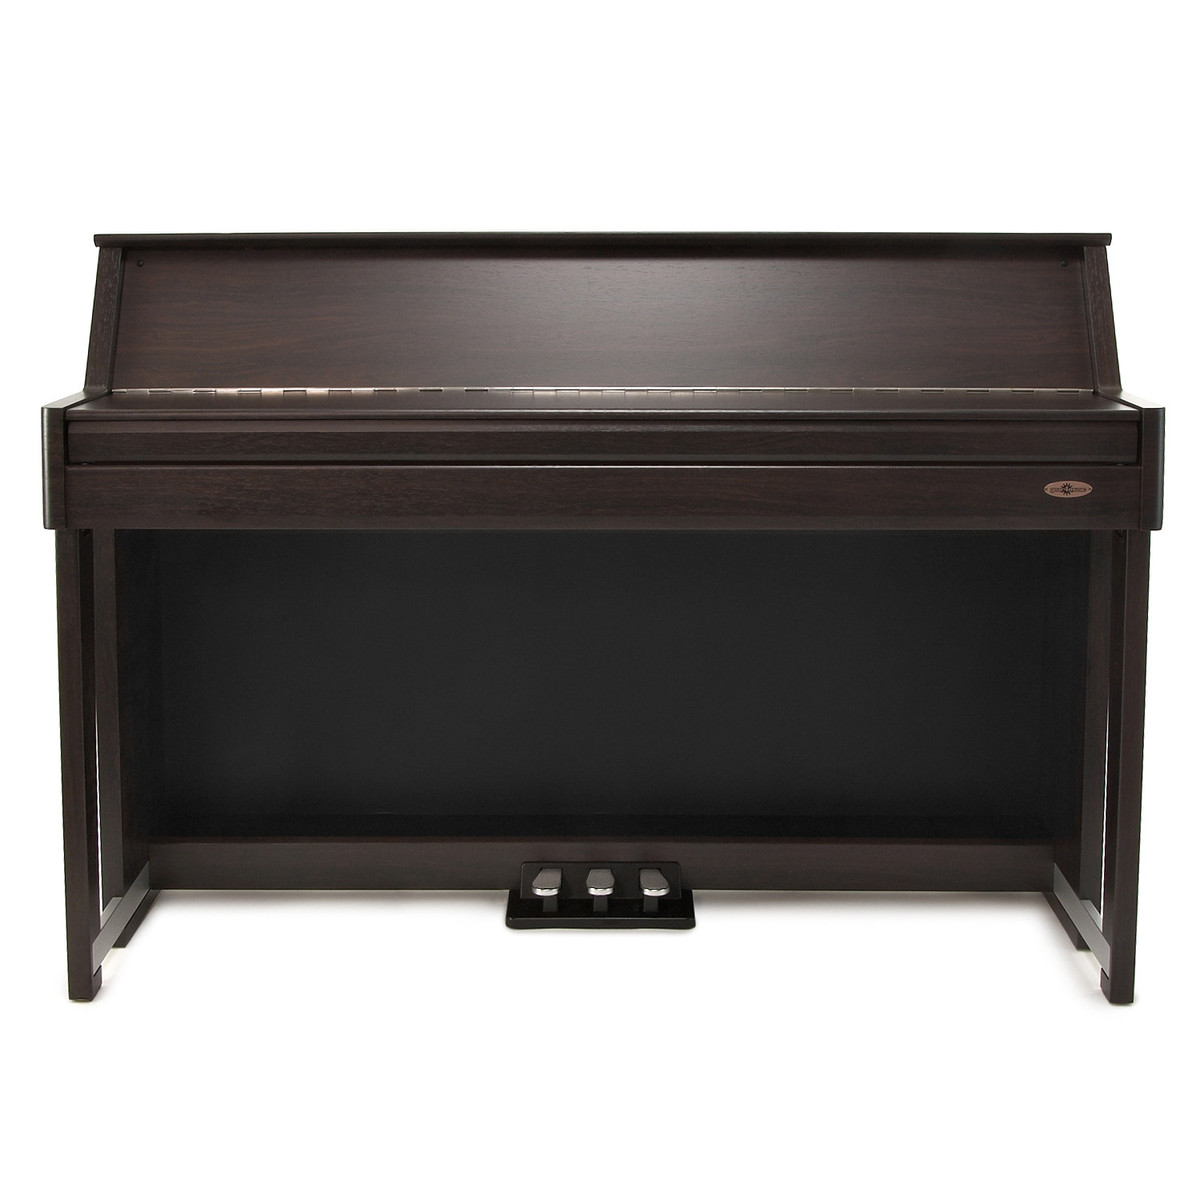 dp70u upright digital piano by gear4music nearly new at. Black Bedroom Furniture Sets. Home Design Ideas